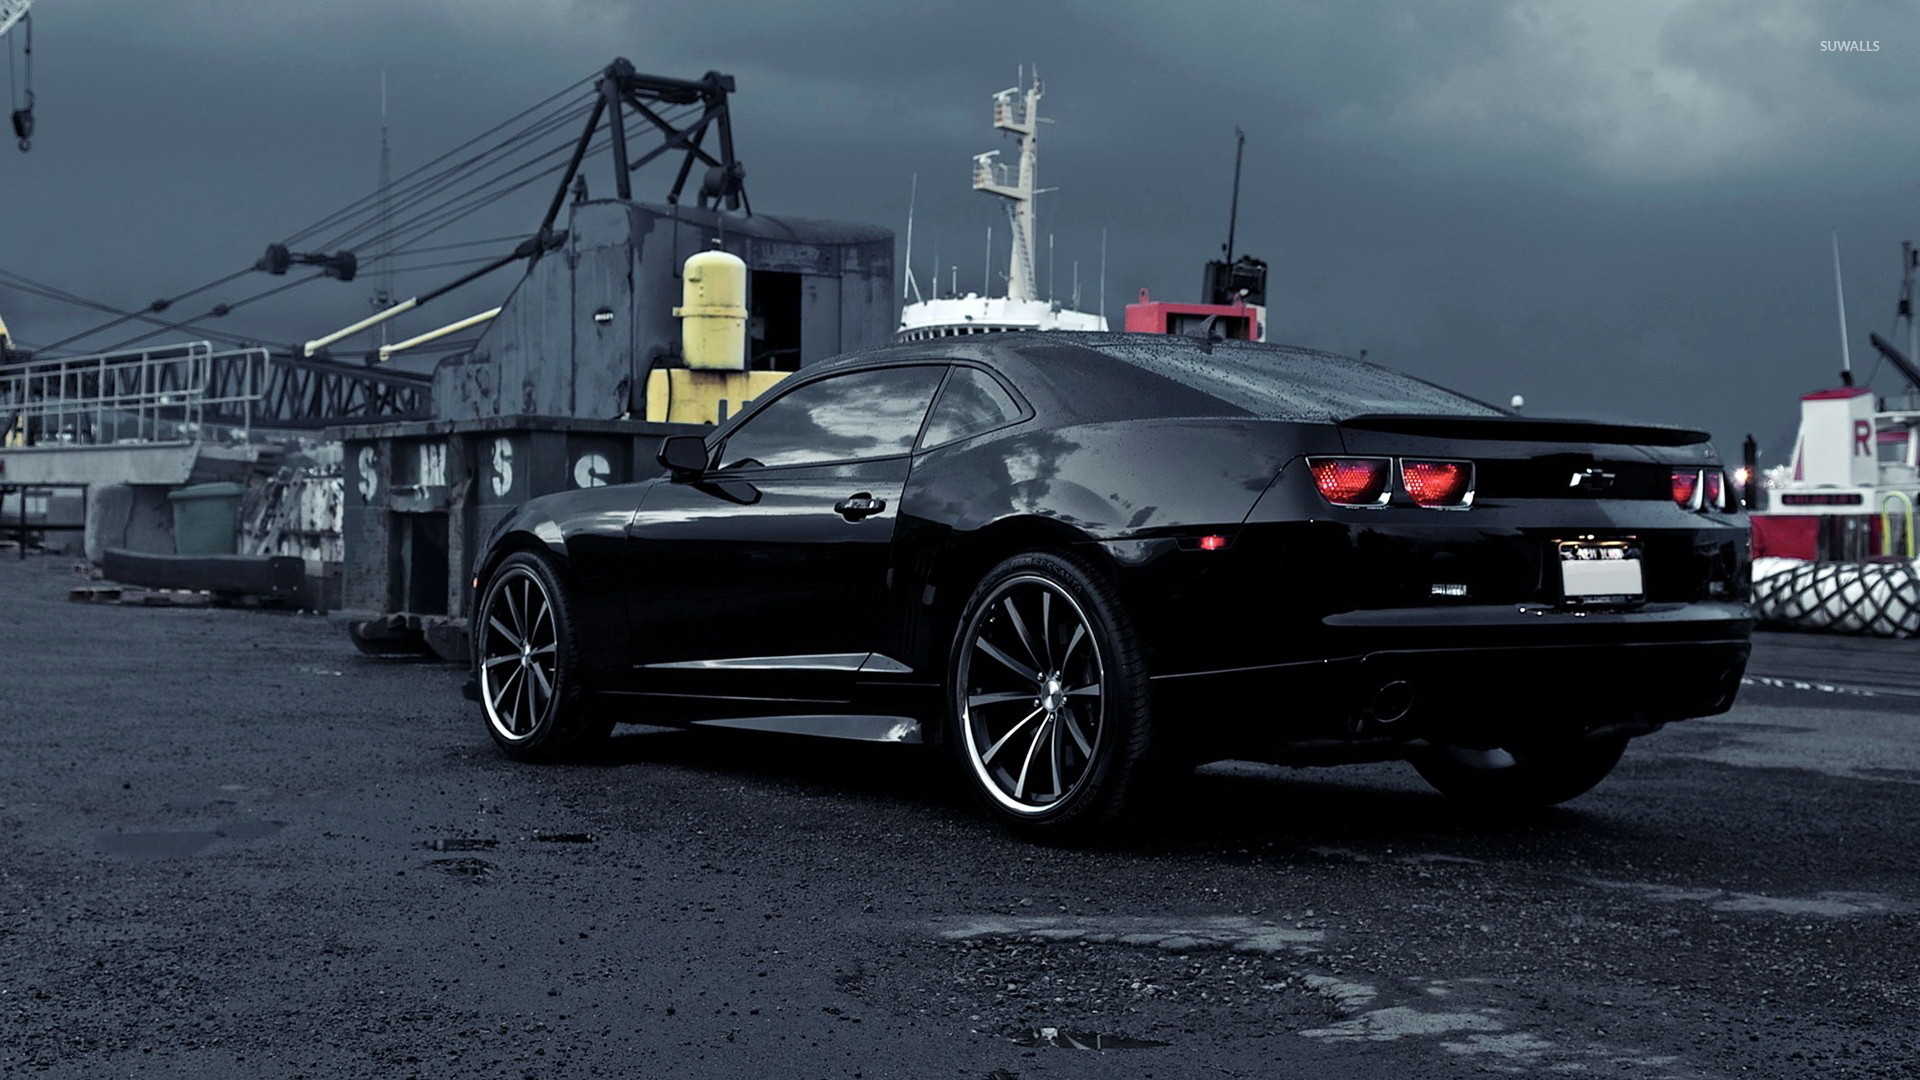 Black Chevrolet Camaro on a rainy day wallpaper